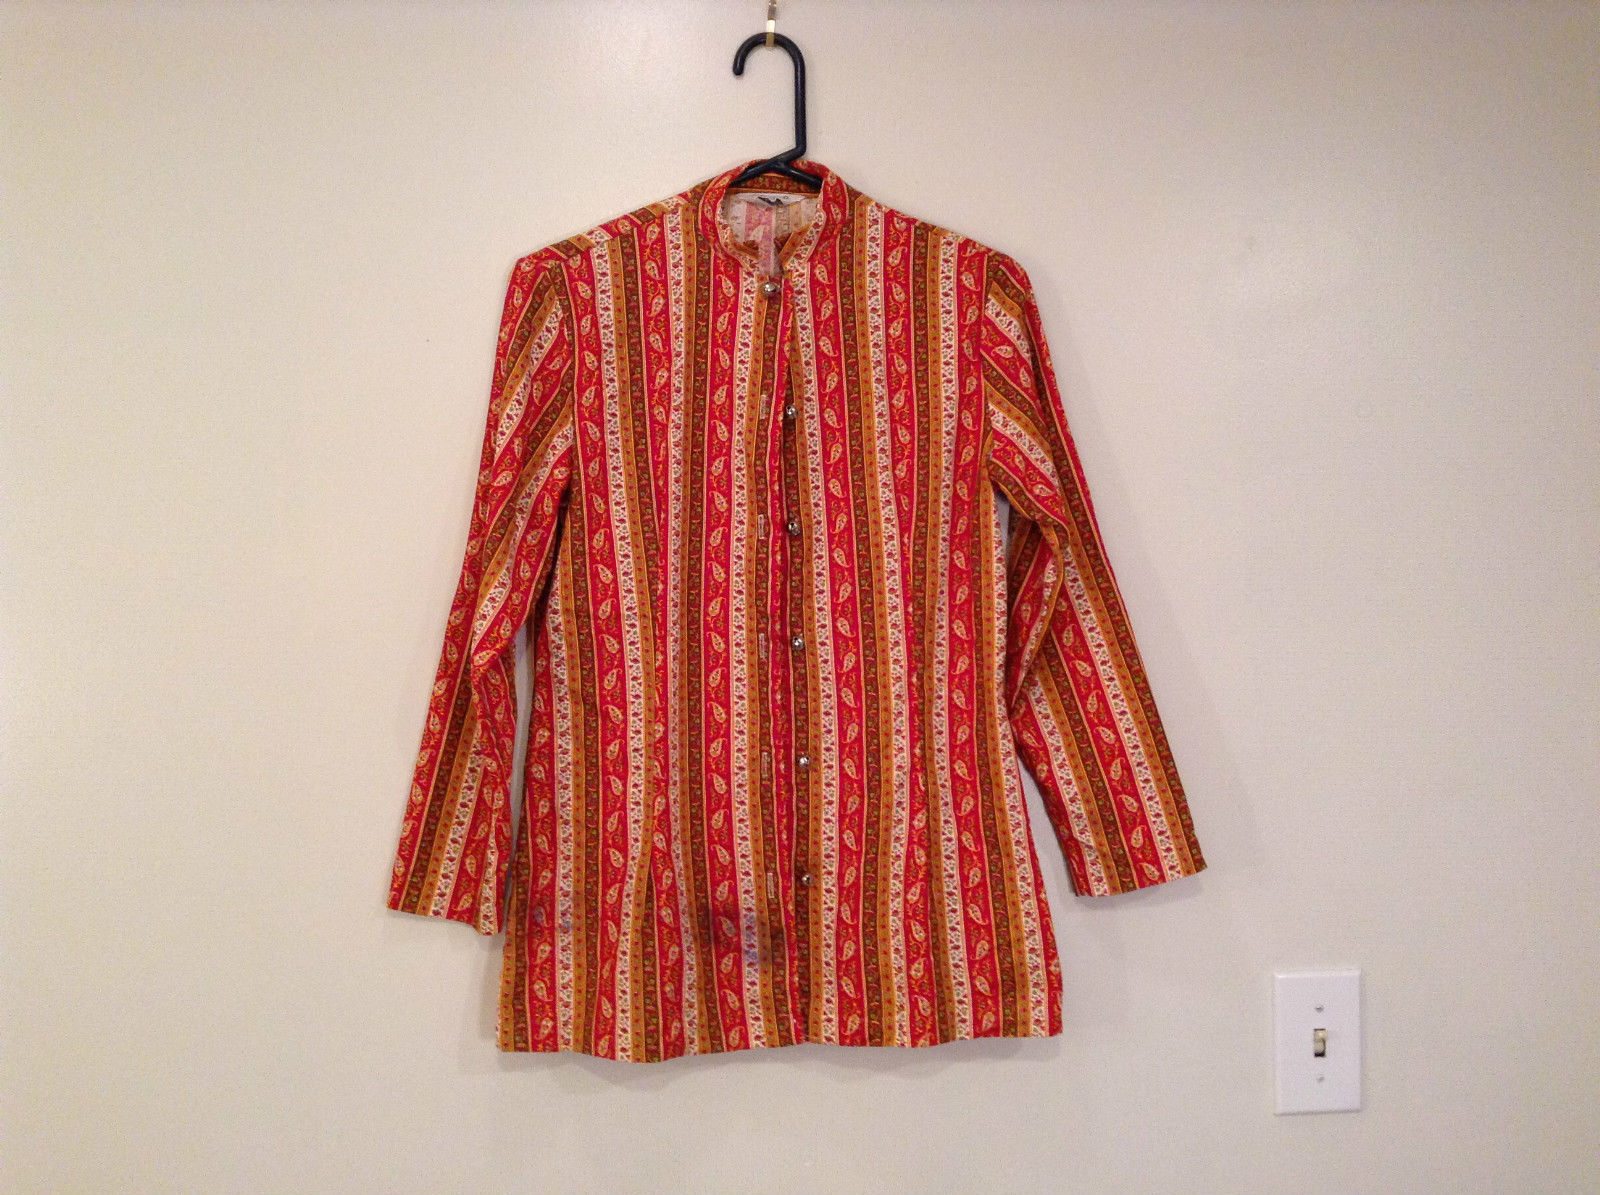 Couture Size 34 Long Sleeve Fun Shirt with Ringing Bells Front Closure